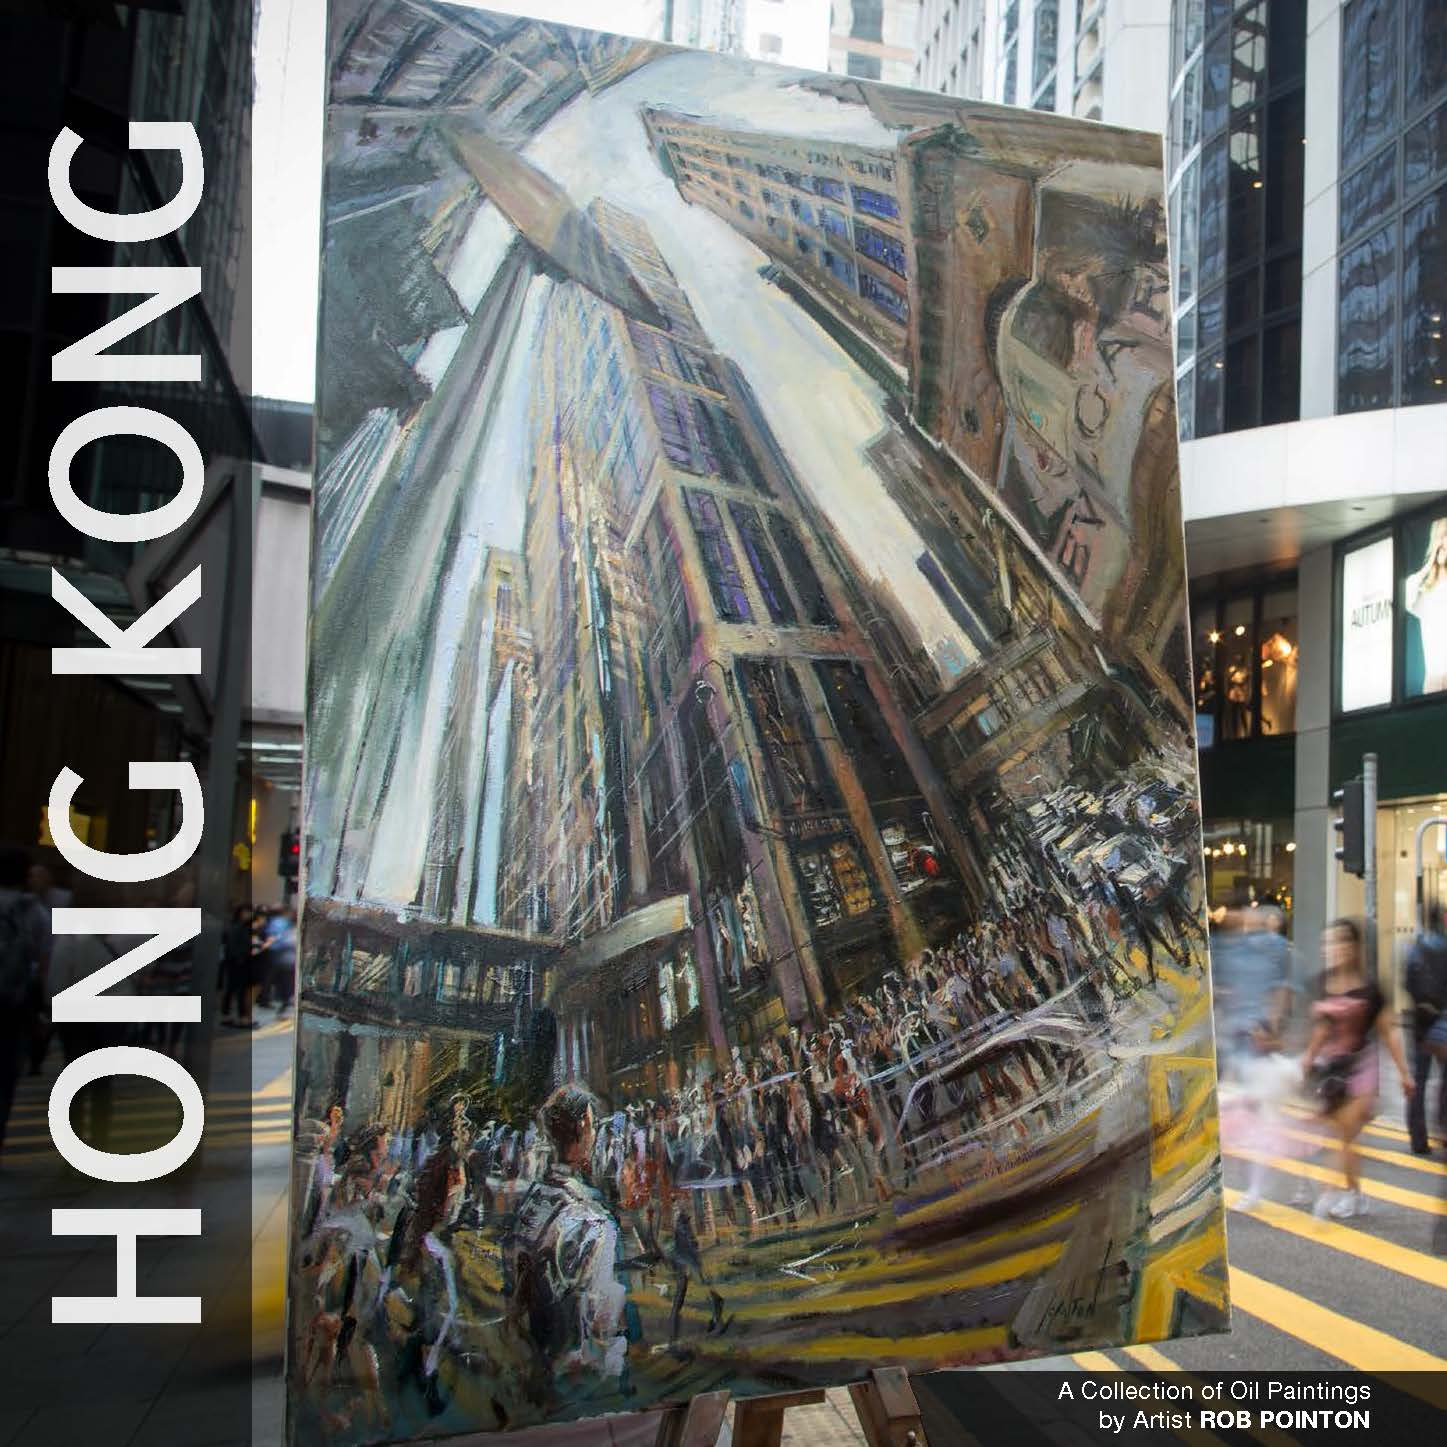 I had the good fortune to bump into Rob Pointon at my spot at the Peak, Rob is an amazing talent and his paintings of Hong Kong are simply awesome